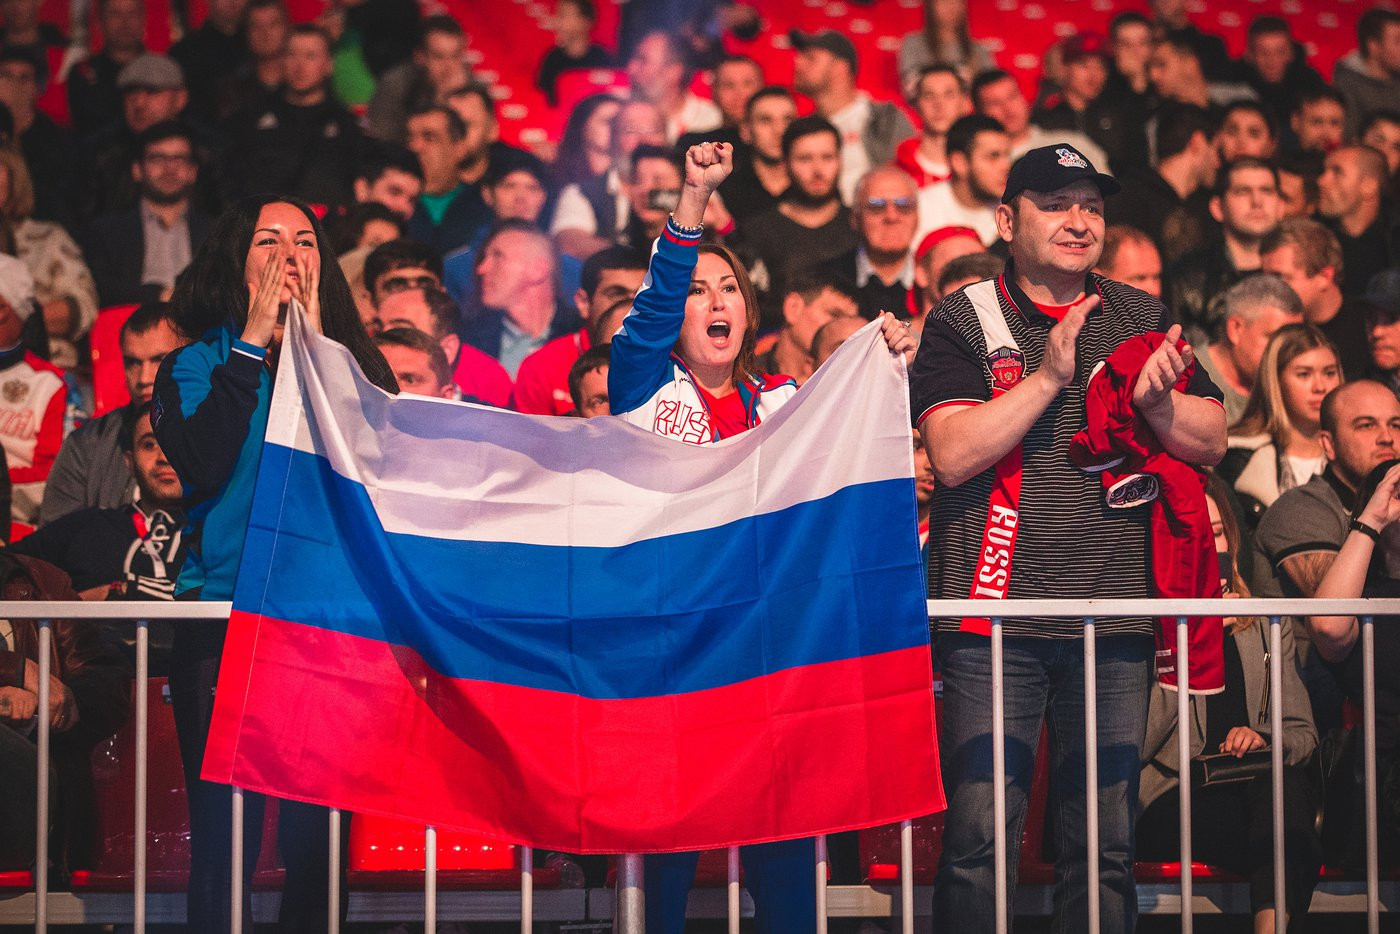 The result delighted the Russian crowd in the venue ©Yekaterinburg 2019